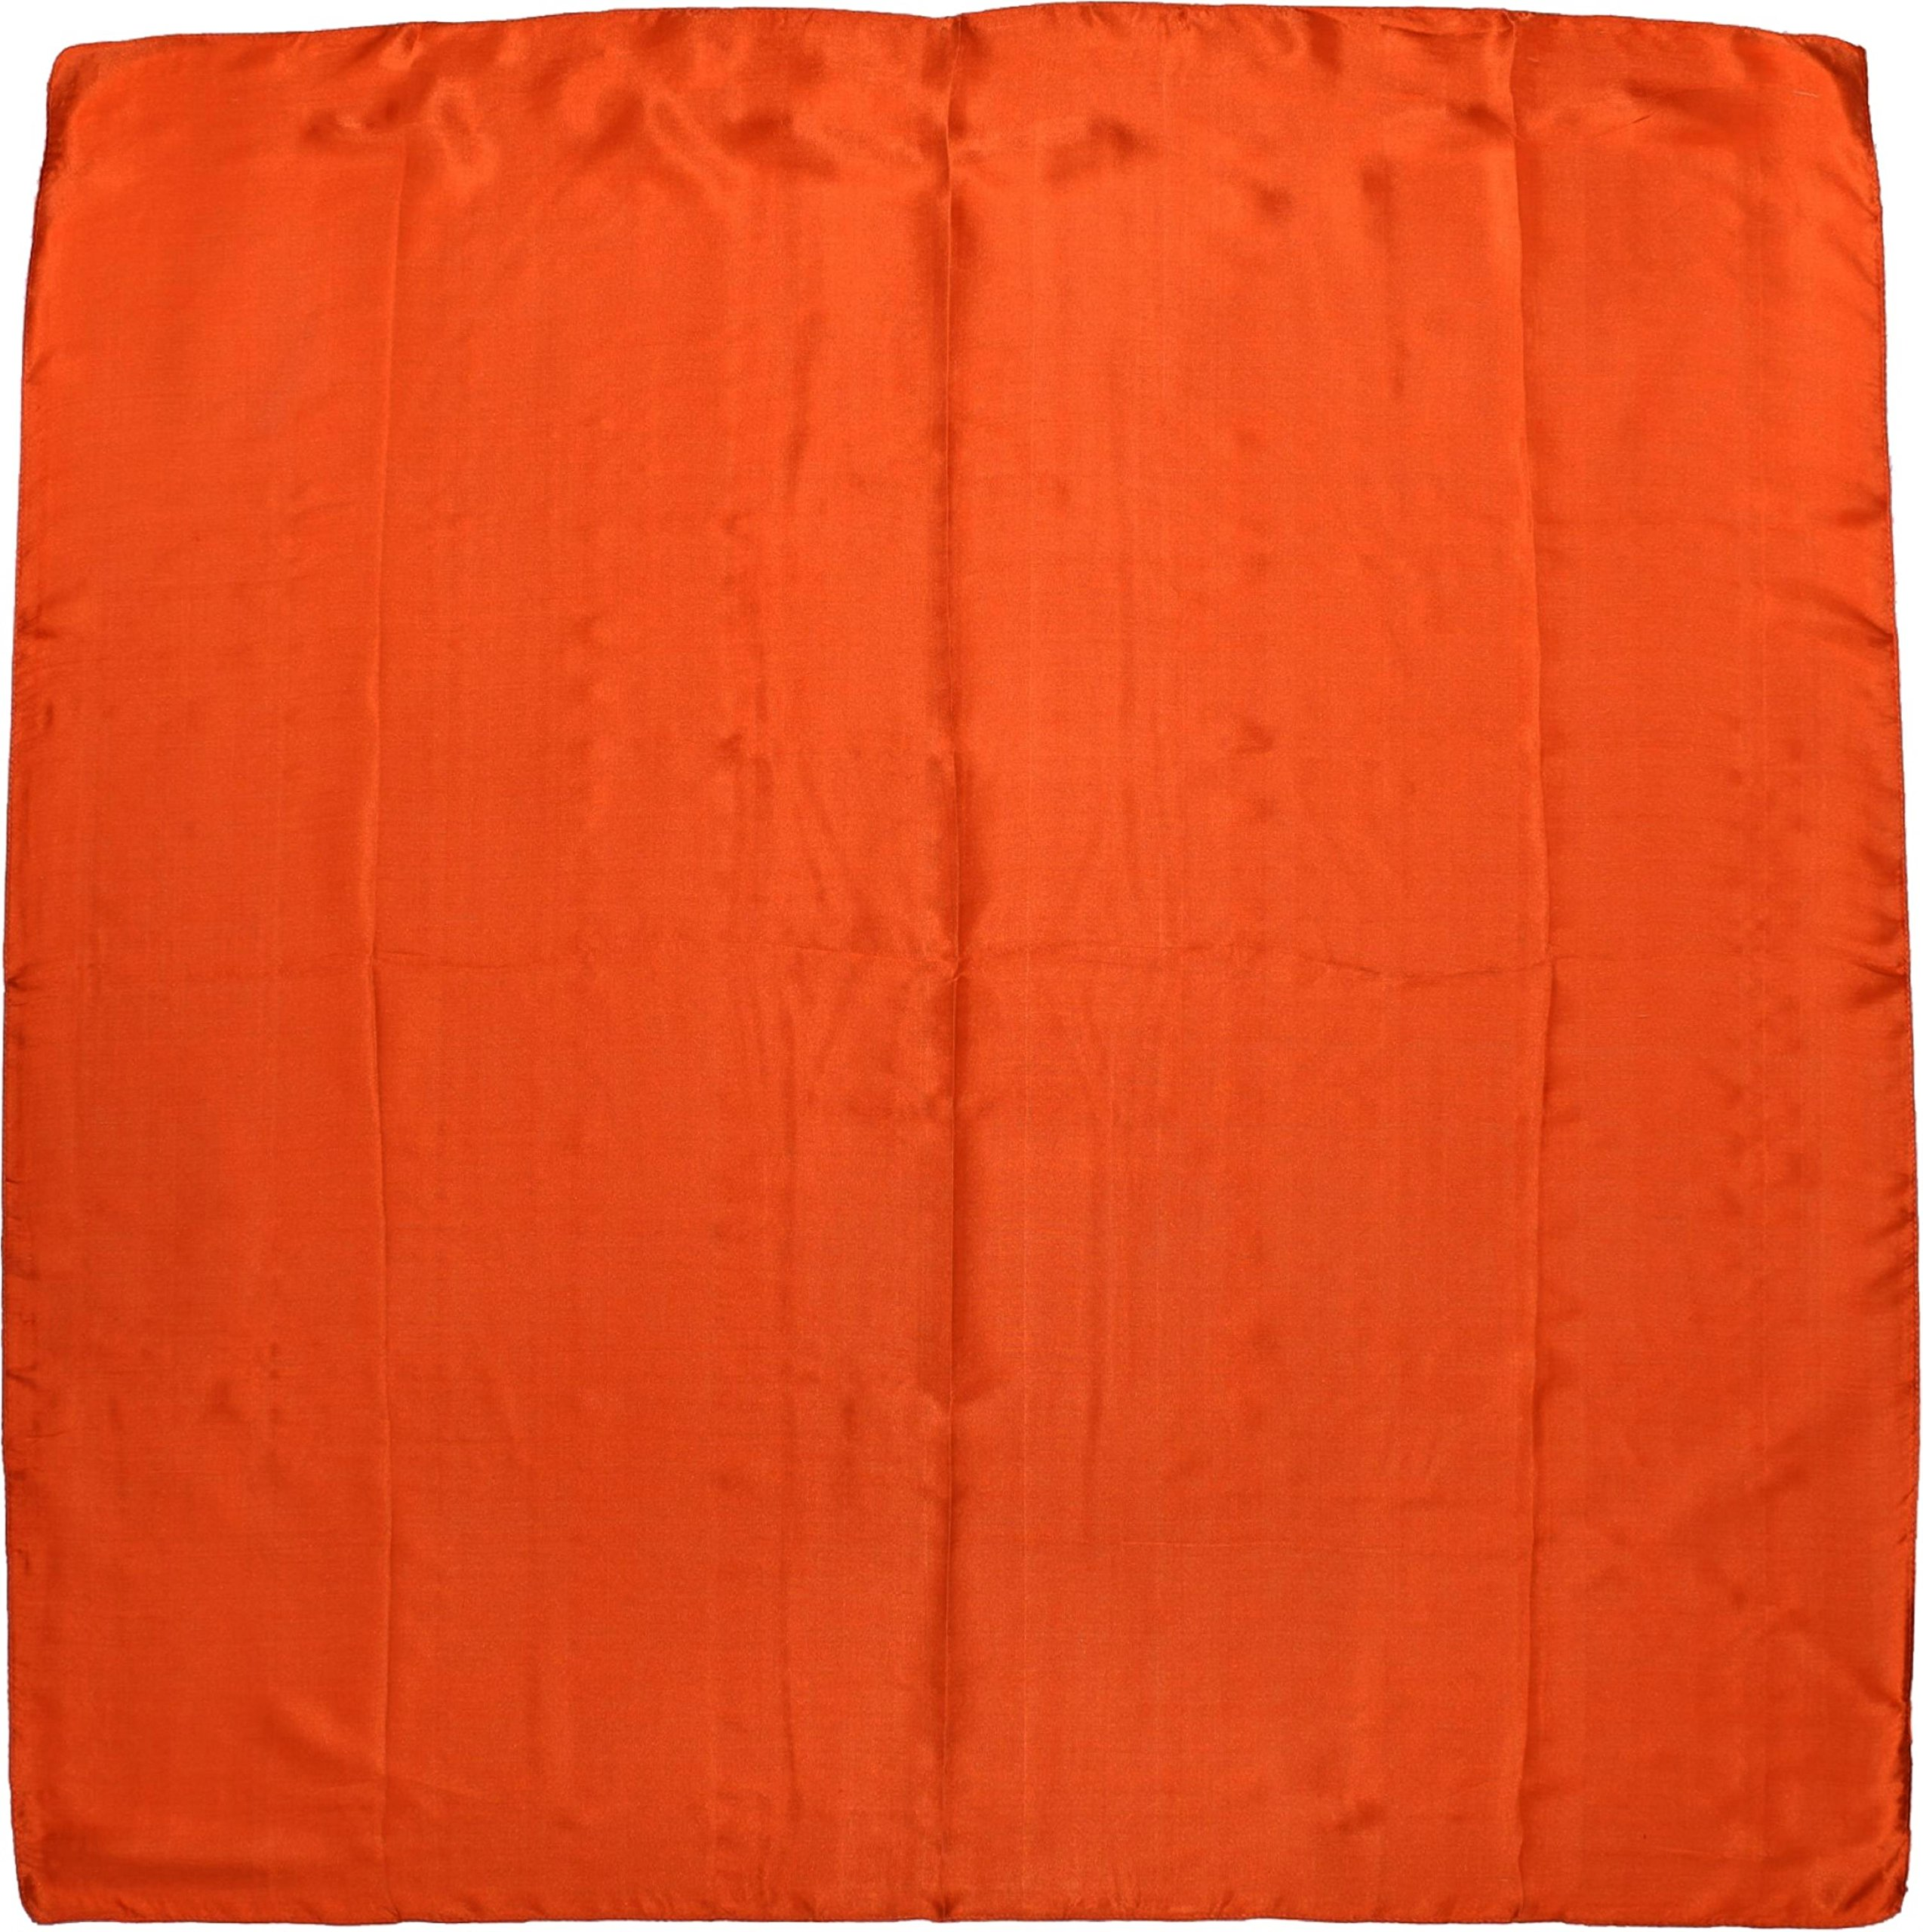 Orange Fine Silk Square Scarf by Bees Knees Fashion (Image #2)